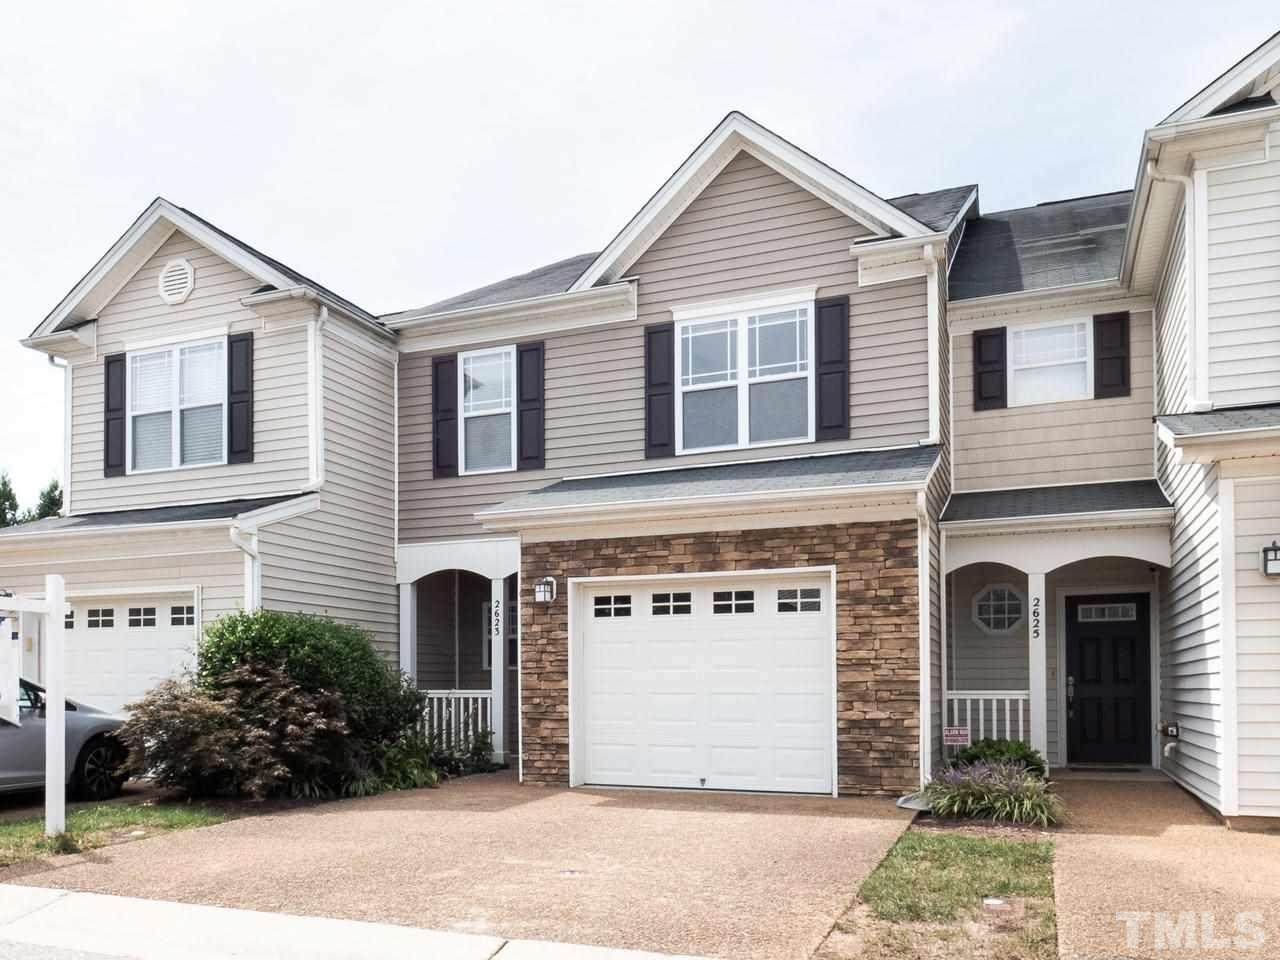 2623 Asher View Court - Photo 1